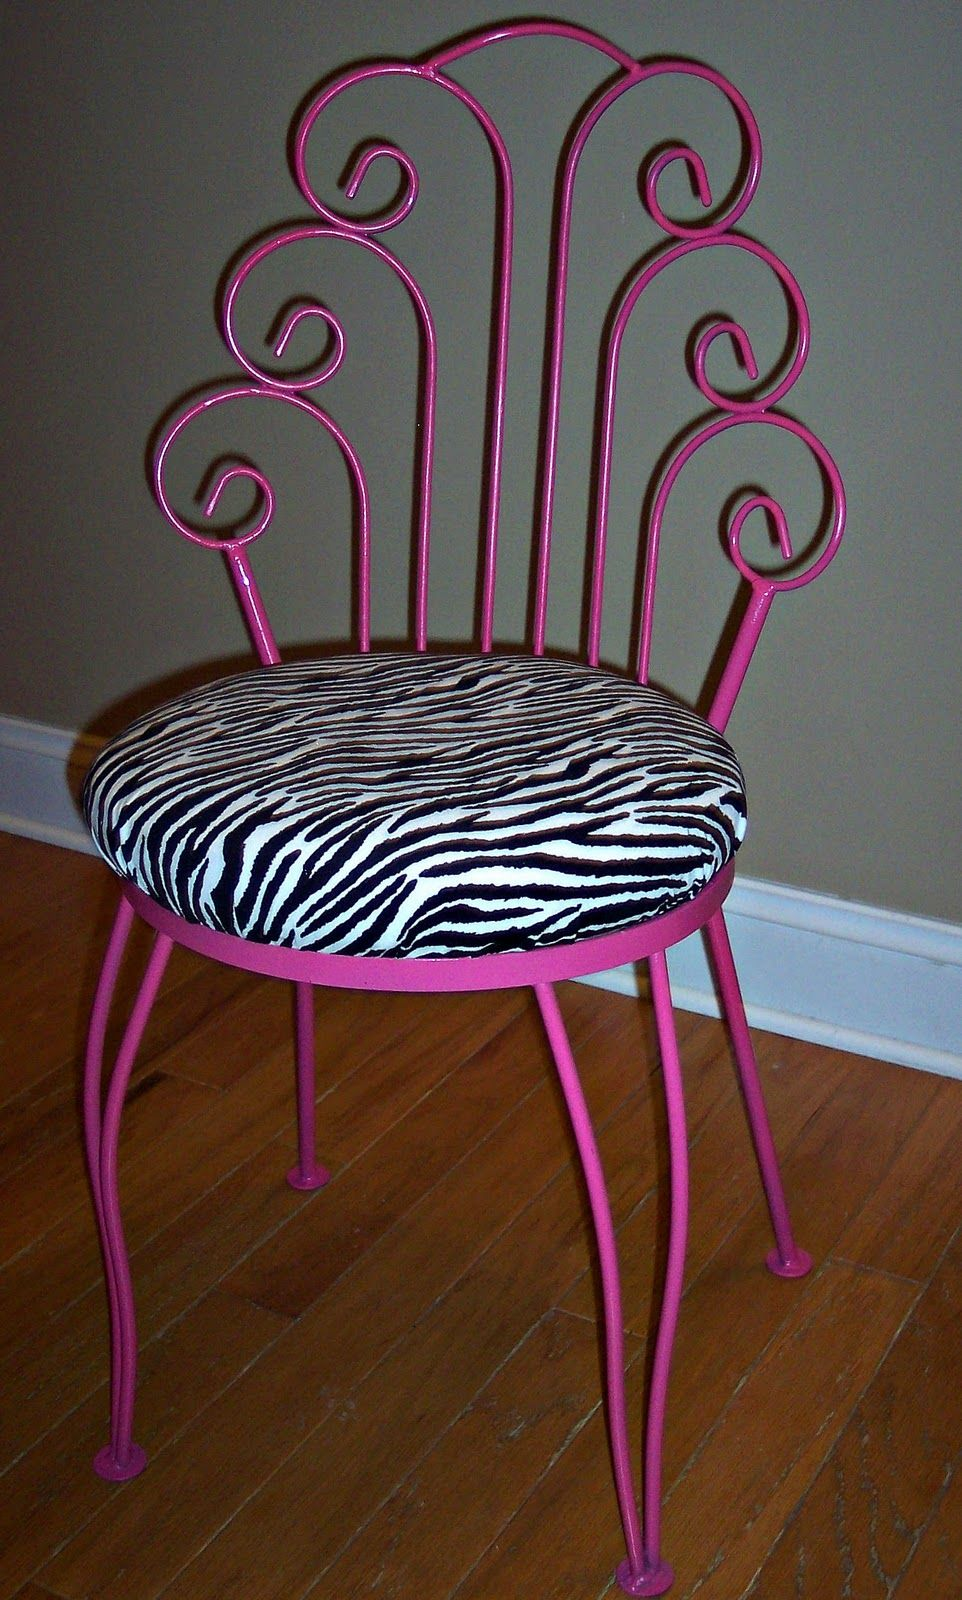 Hot Pink Desk Chair Uniquely Chic A Little Hot Pink and